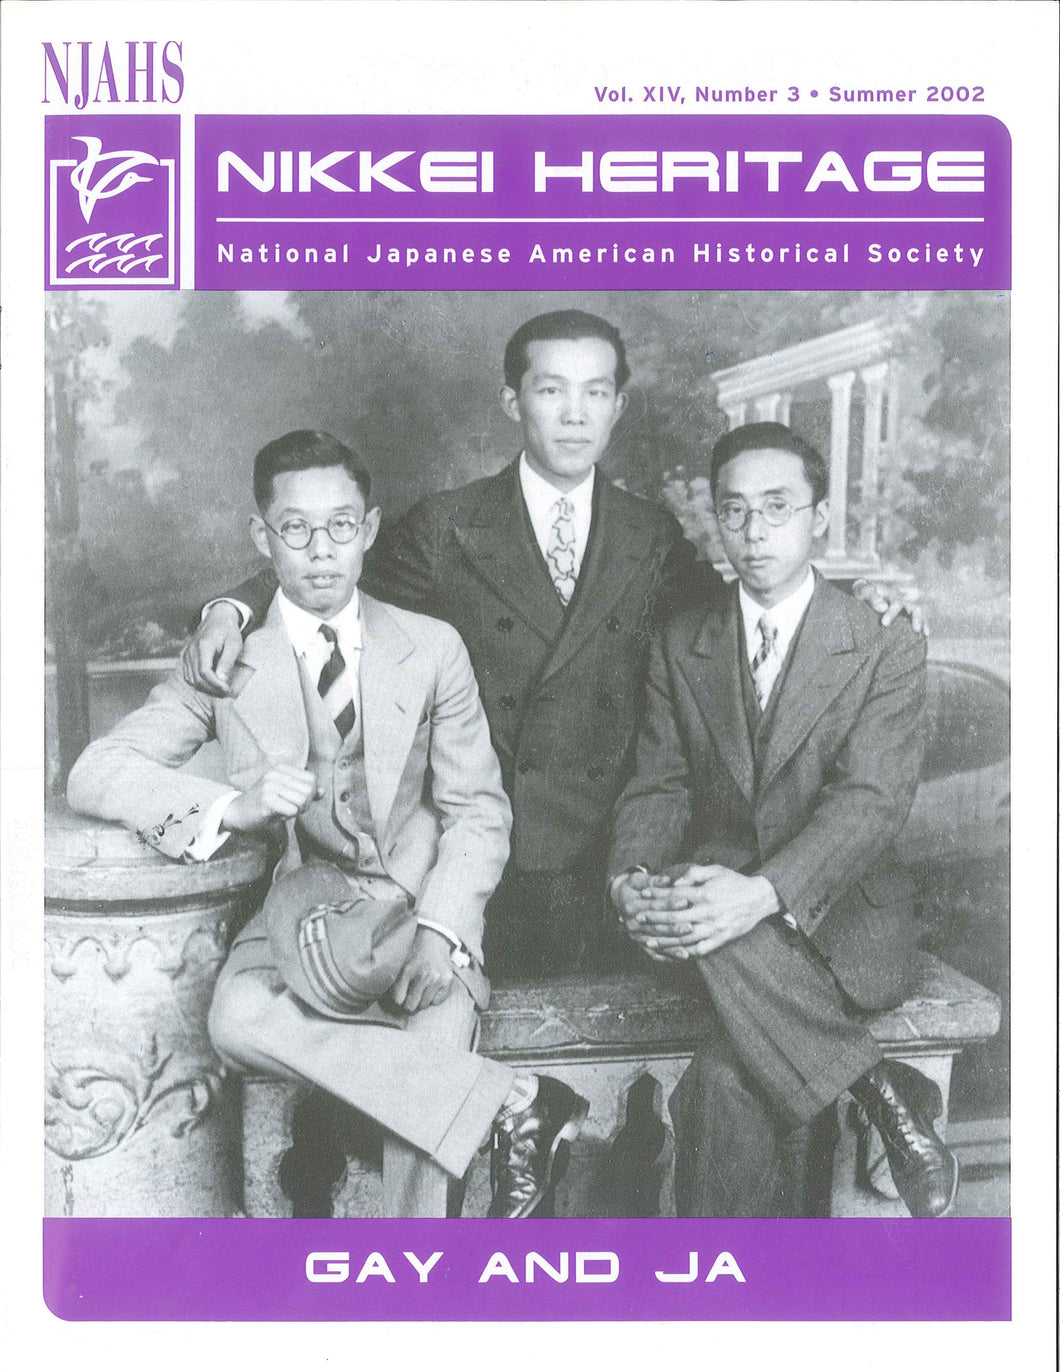 Nikkei Heritage - Gay and JA